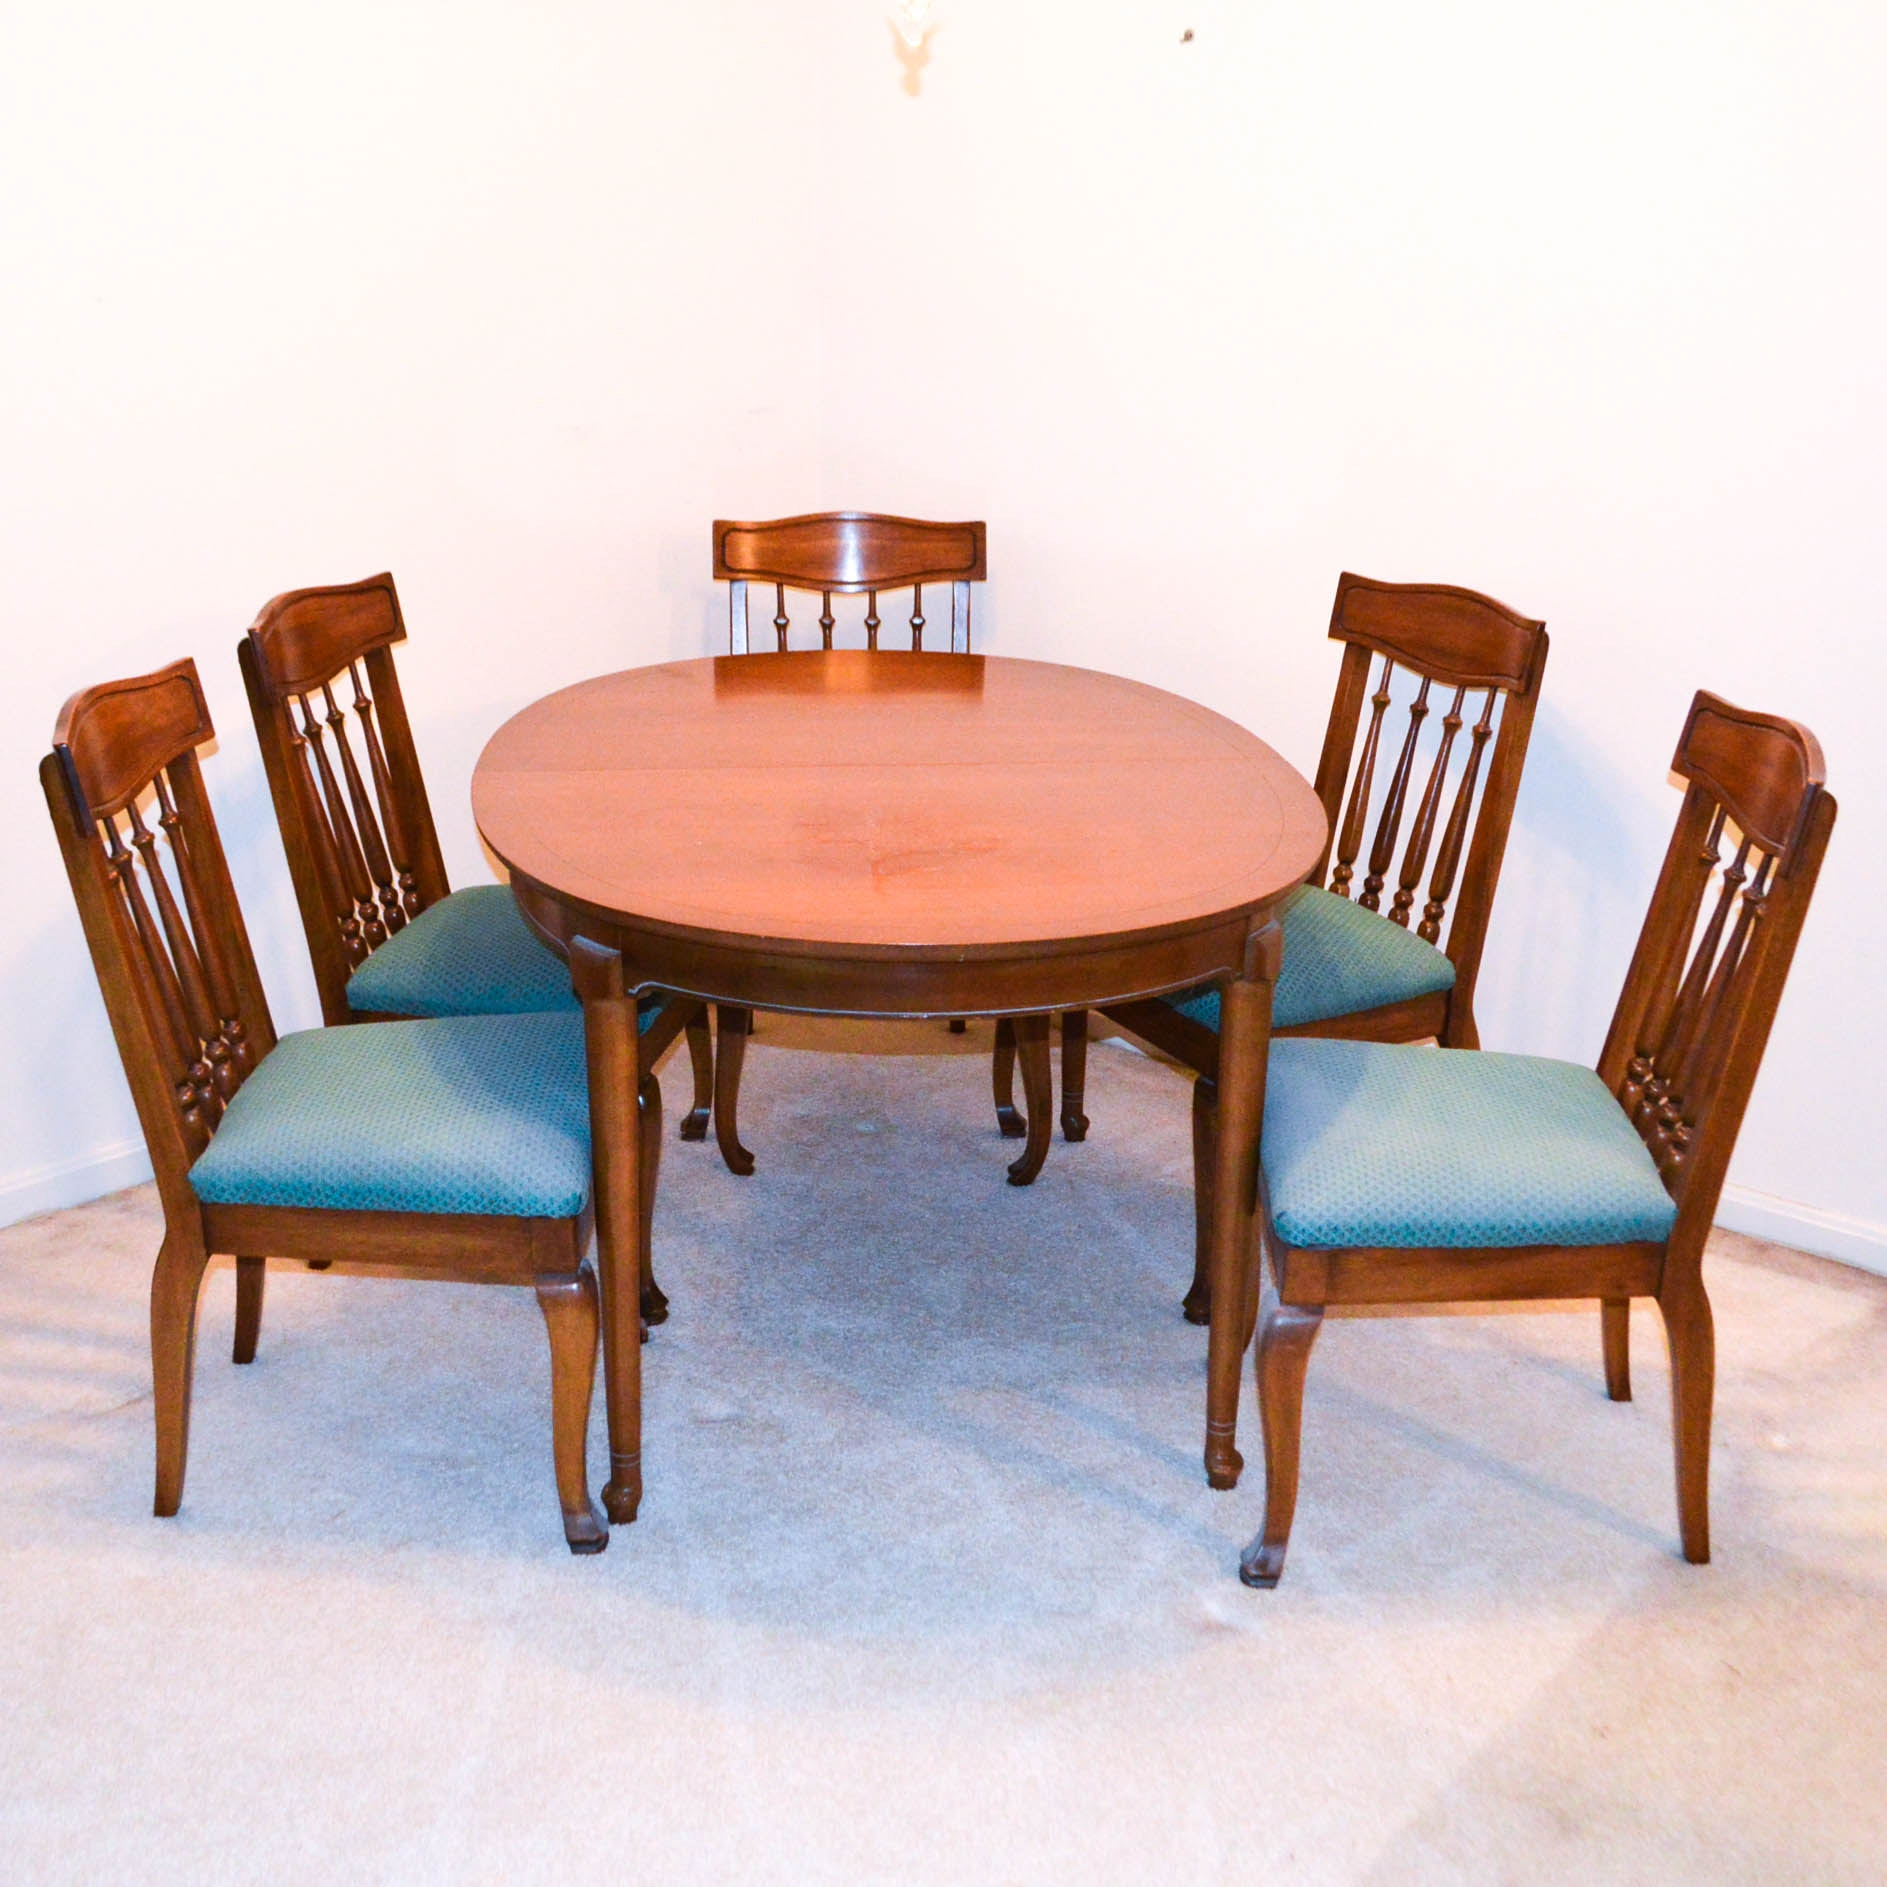 Vintage Dining Table and Chairs by Hickory